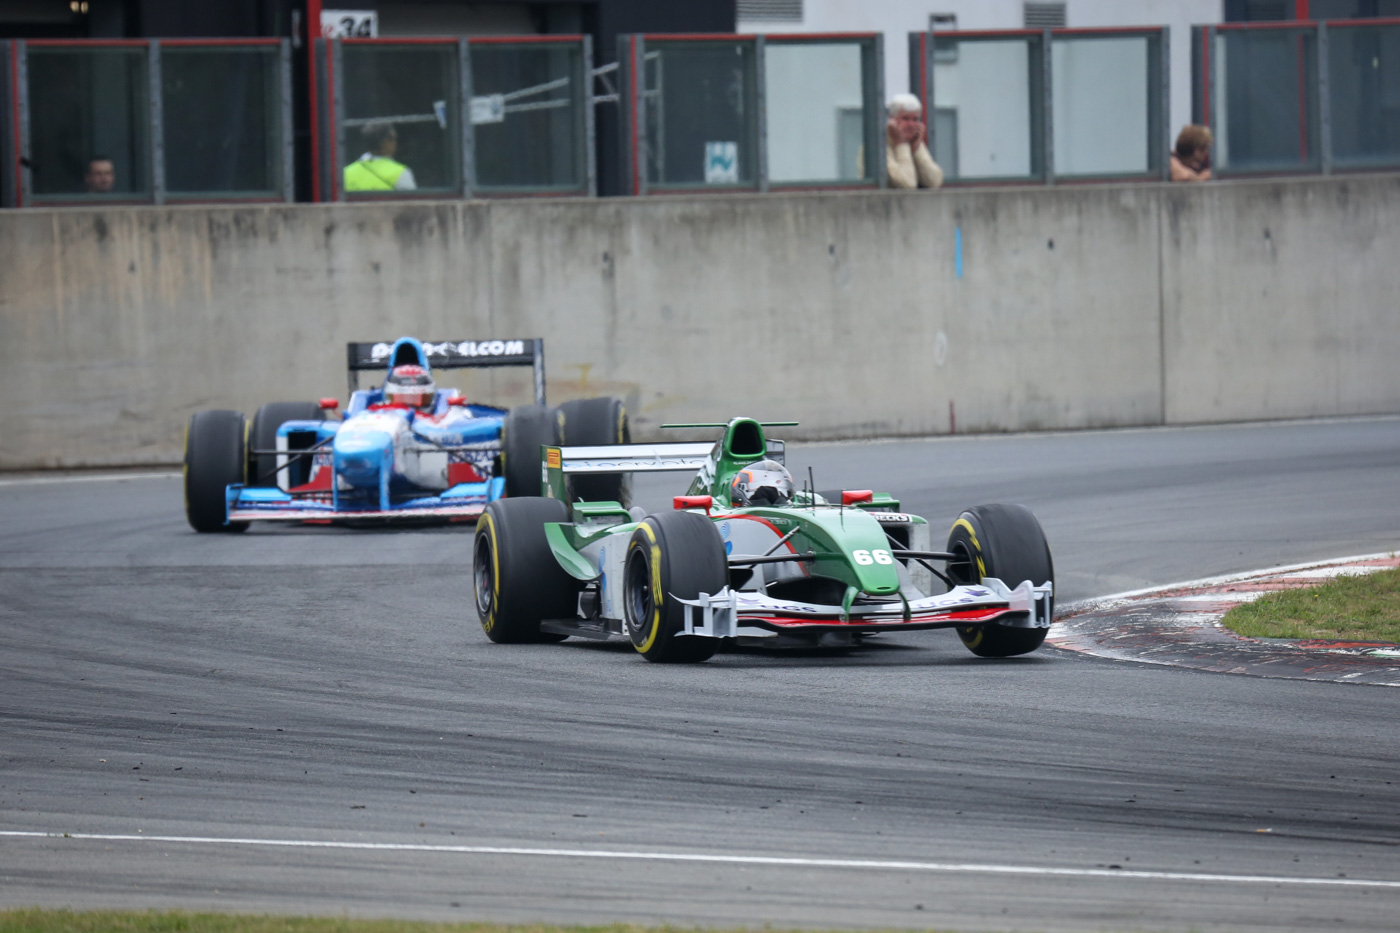 Klaas Zwart (r.) leading the grid for the first rounds at race 2 (Zolder 2017).